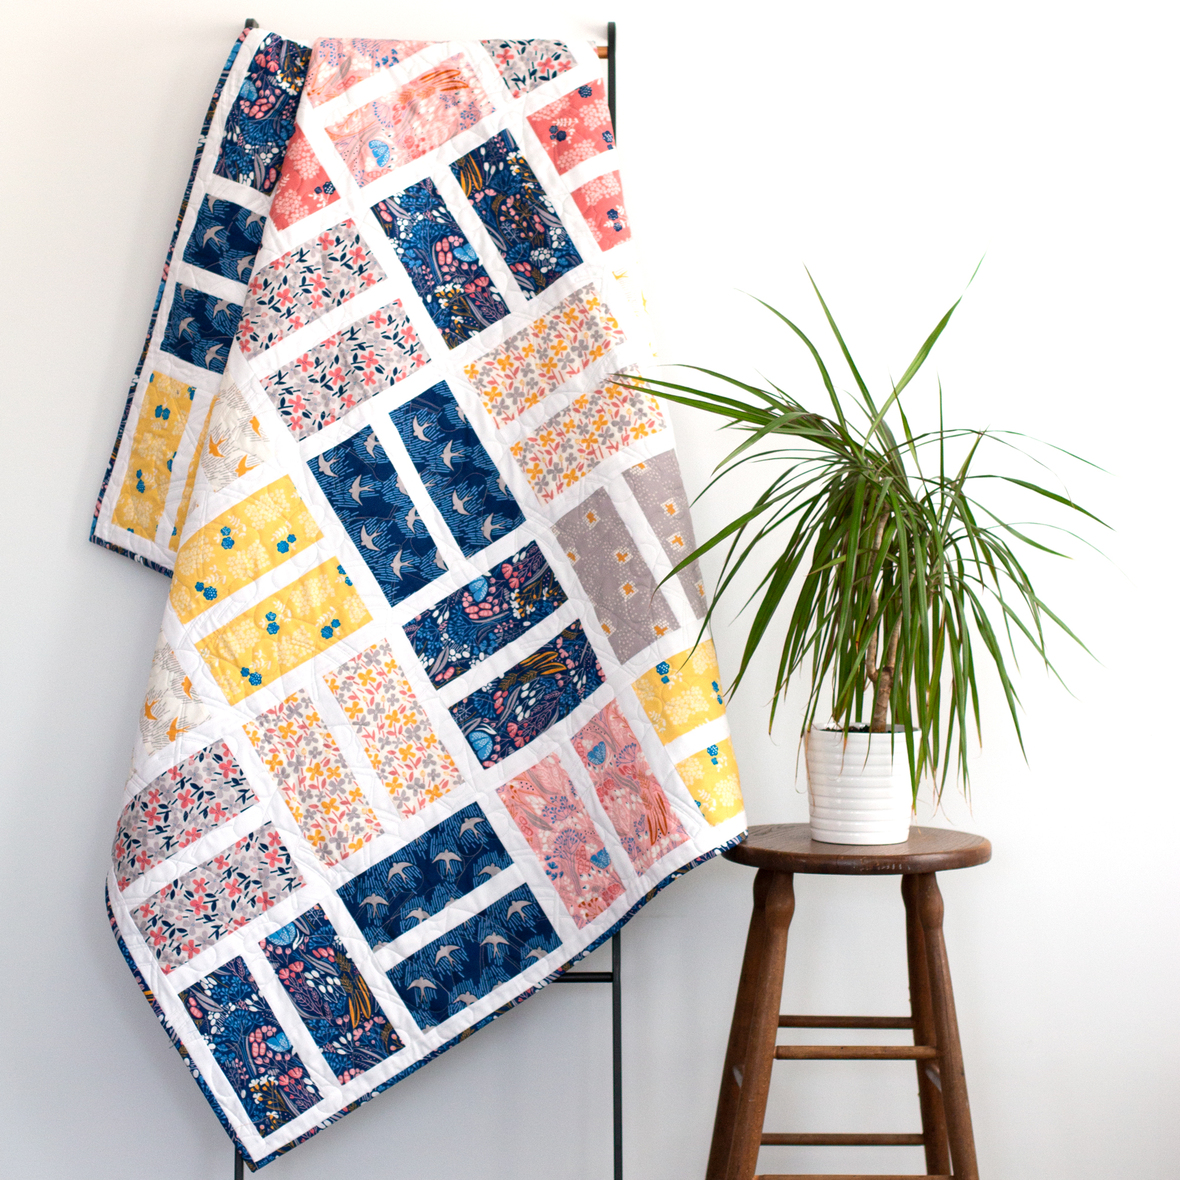 whitehaven quilt SITE FREE PATTERN LINK